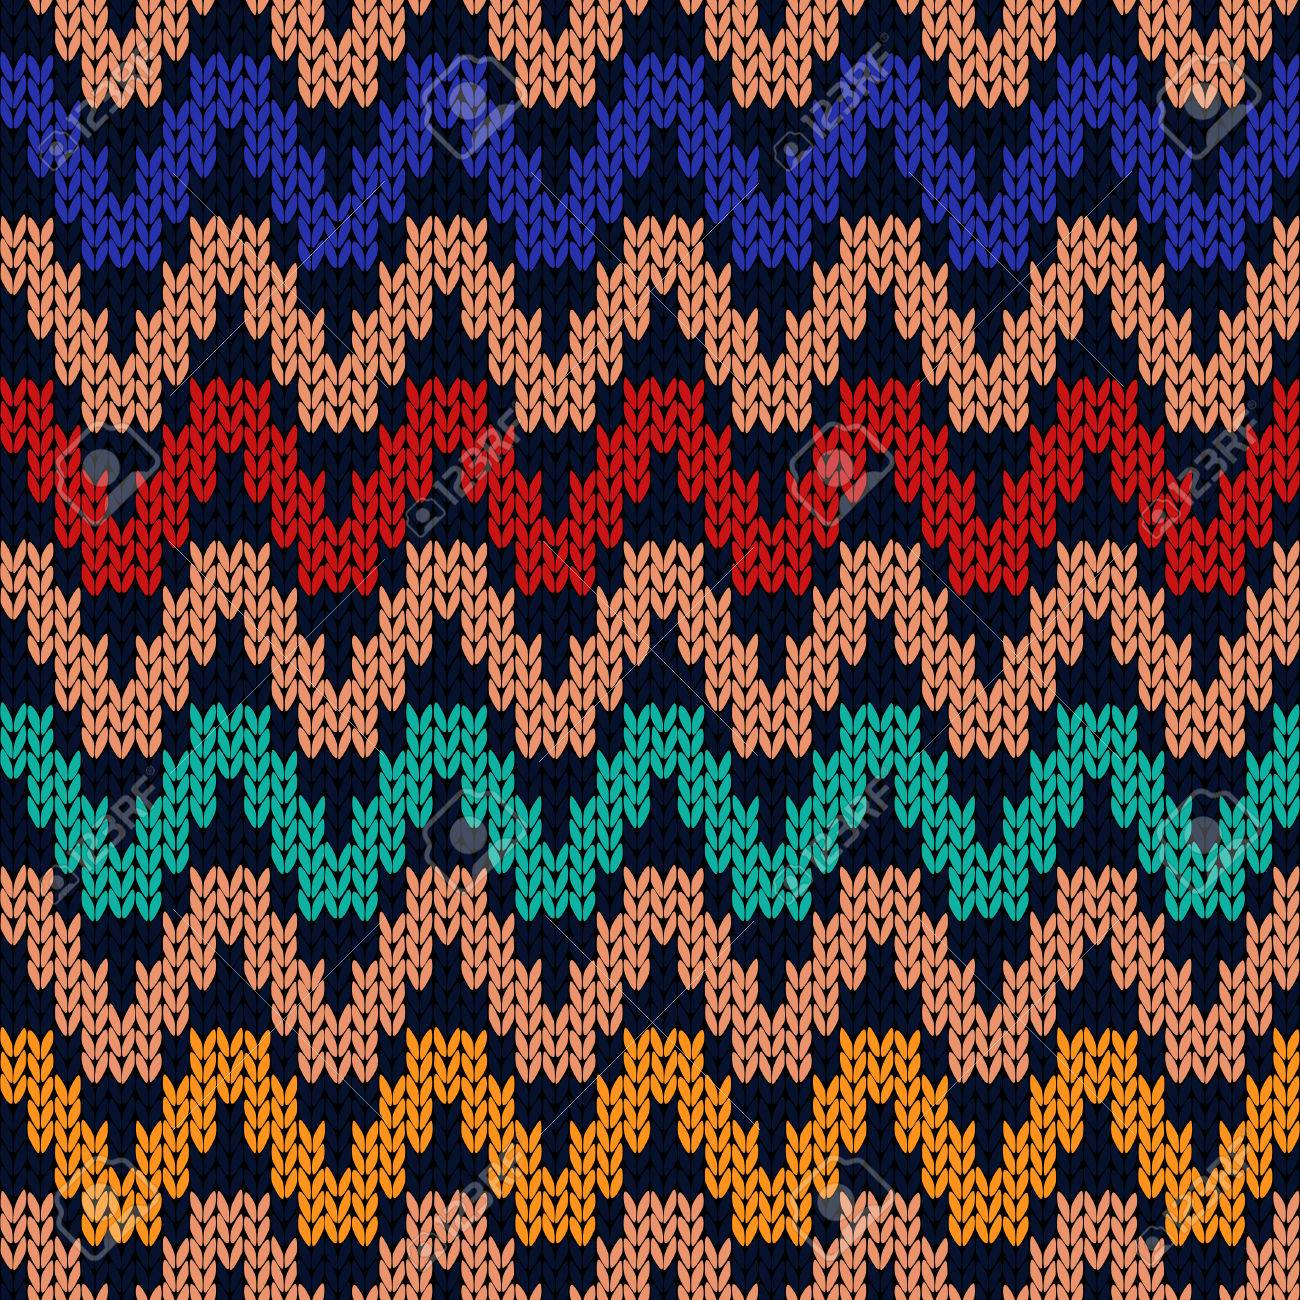 Geometrical Seamless Knitted Pattern With Zigzag Lines As A Fabric ...